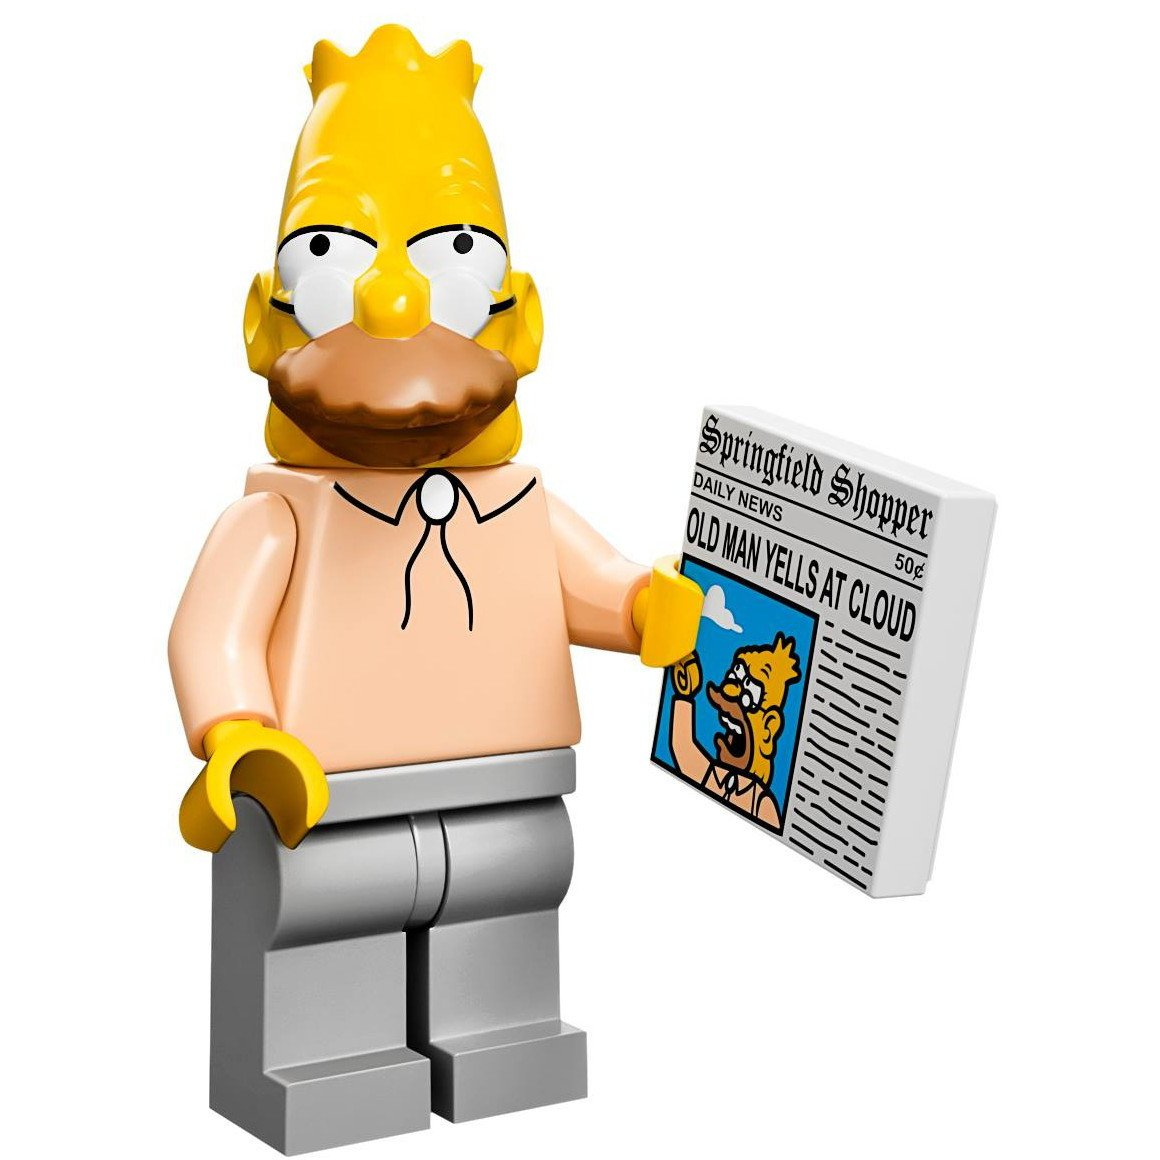 Apu Lego 71005 LEGO Minifigure Simpsons Series 1 New in Opened Packaging New